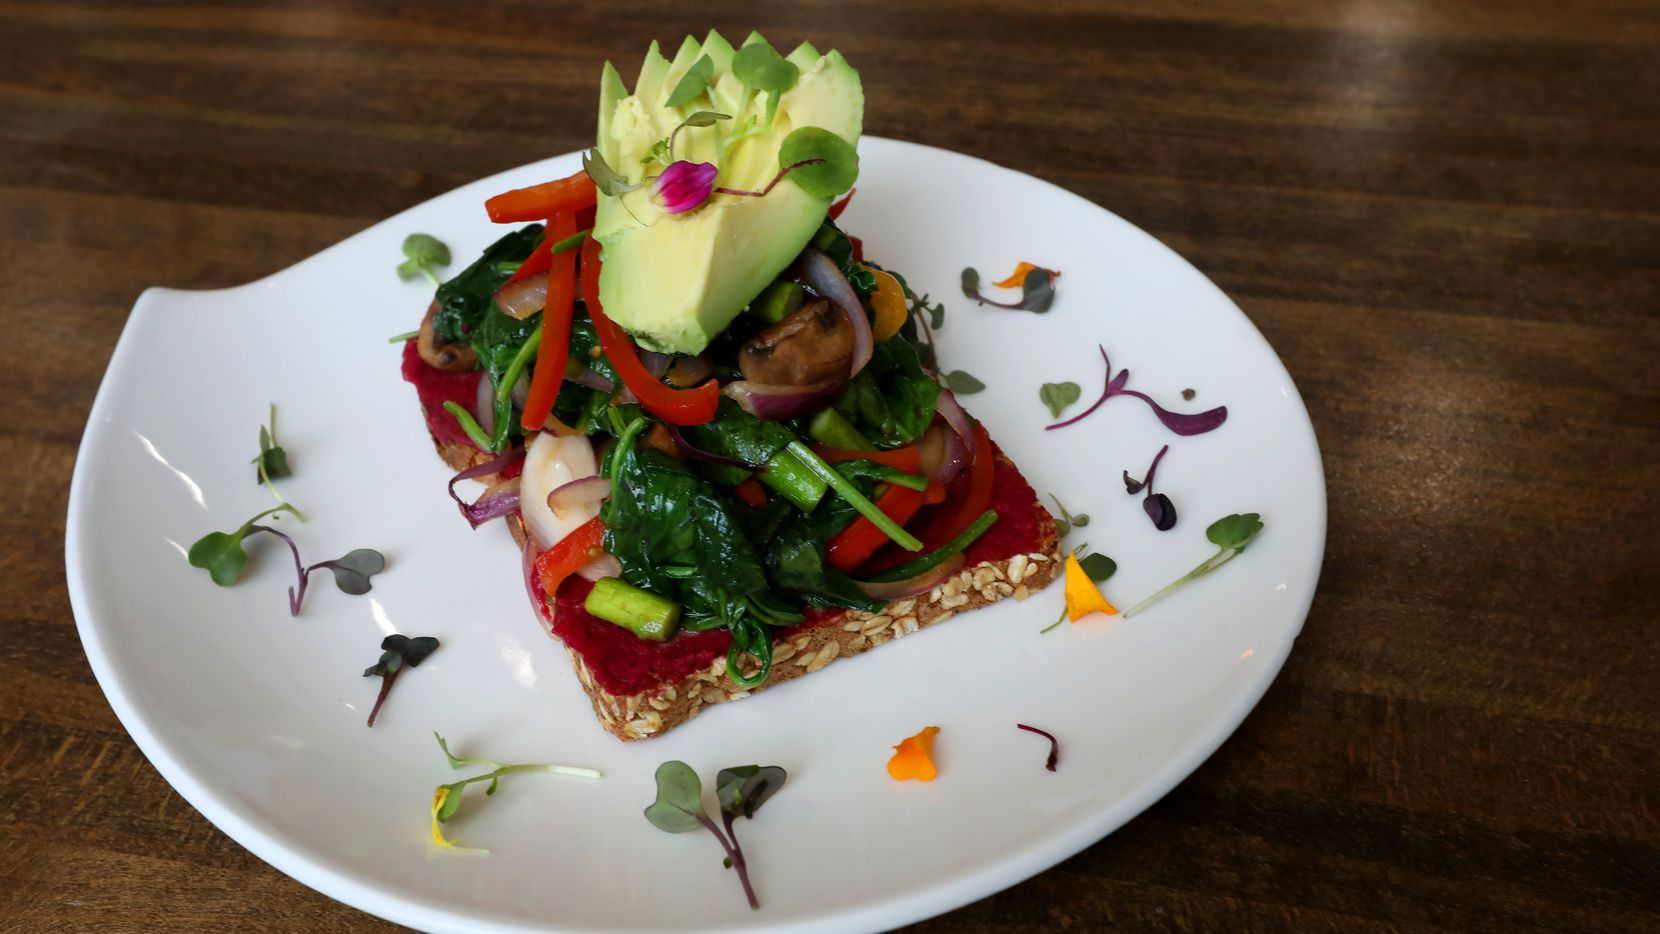 Veggie Toast, with avocado, pan seared mushroom, spinach, asparagus, tomato and beet hummus on multigrain bread at The Nest Cafe in Frisco, Texas, Thursday, Oct. 17, 2019. (Anja Schlein/Special Contributor)